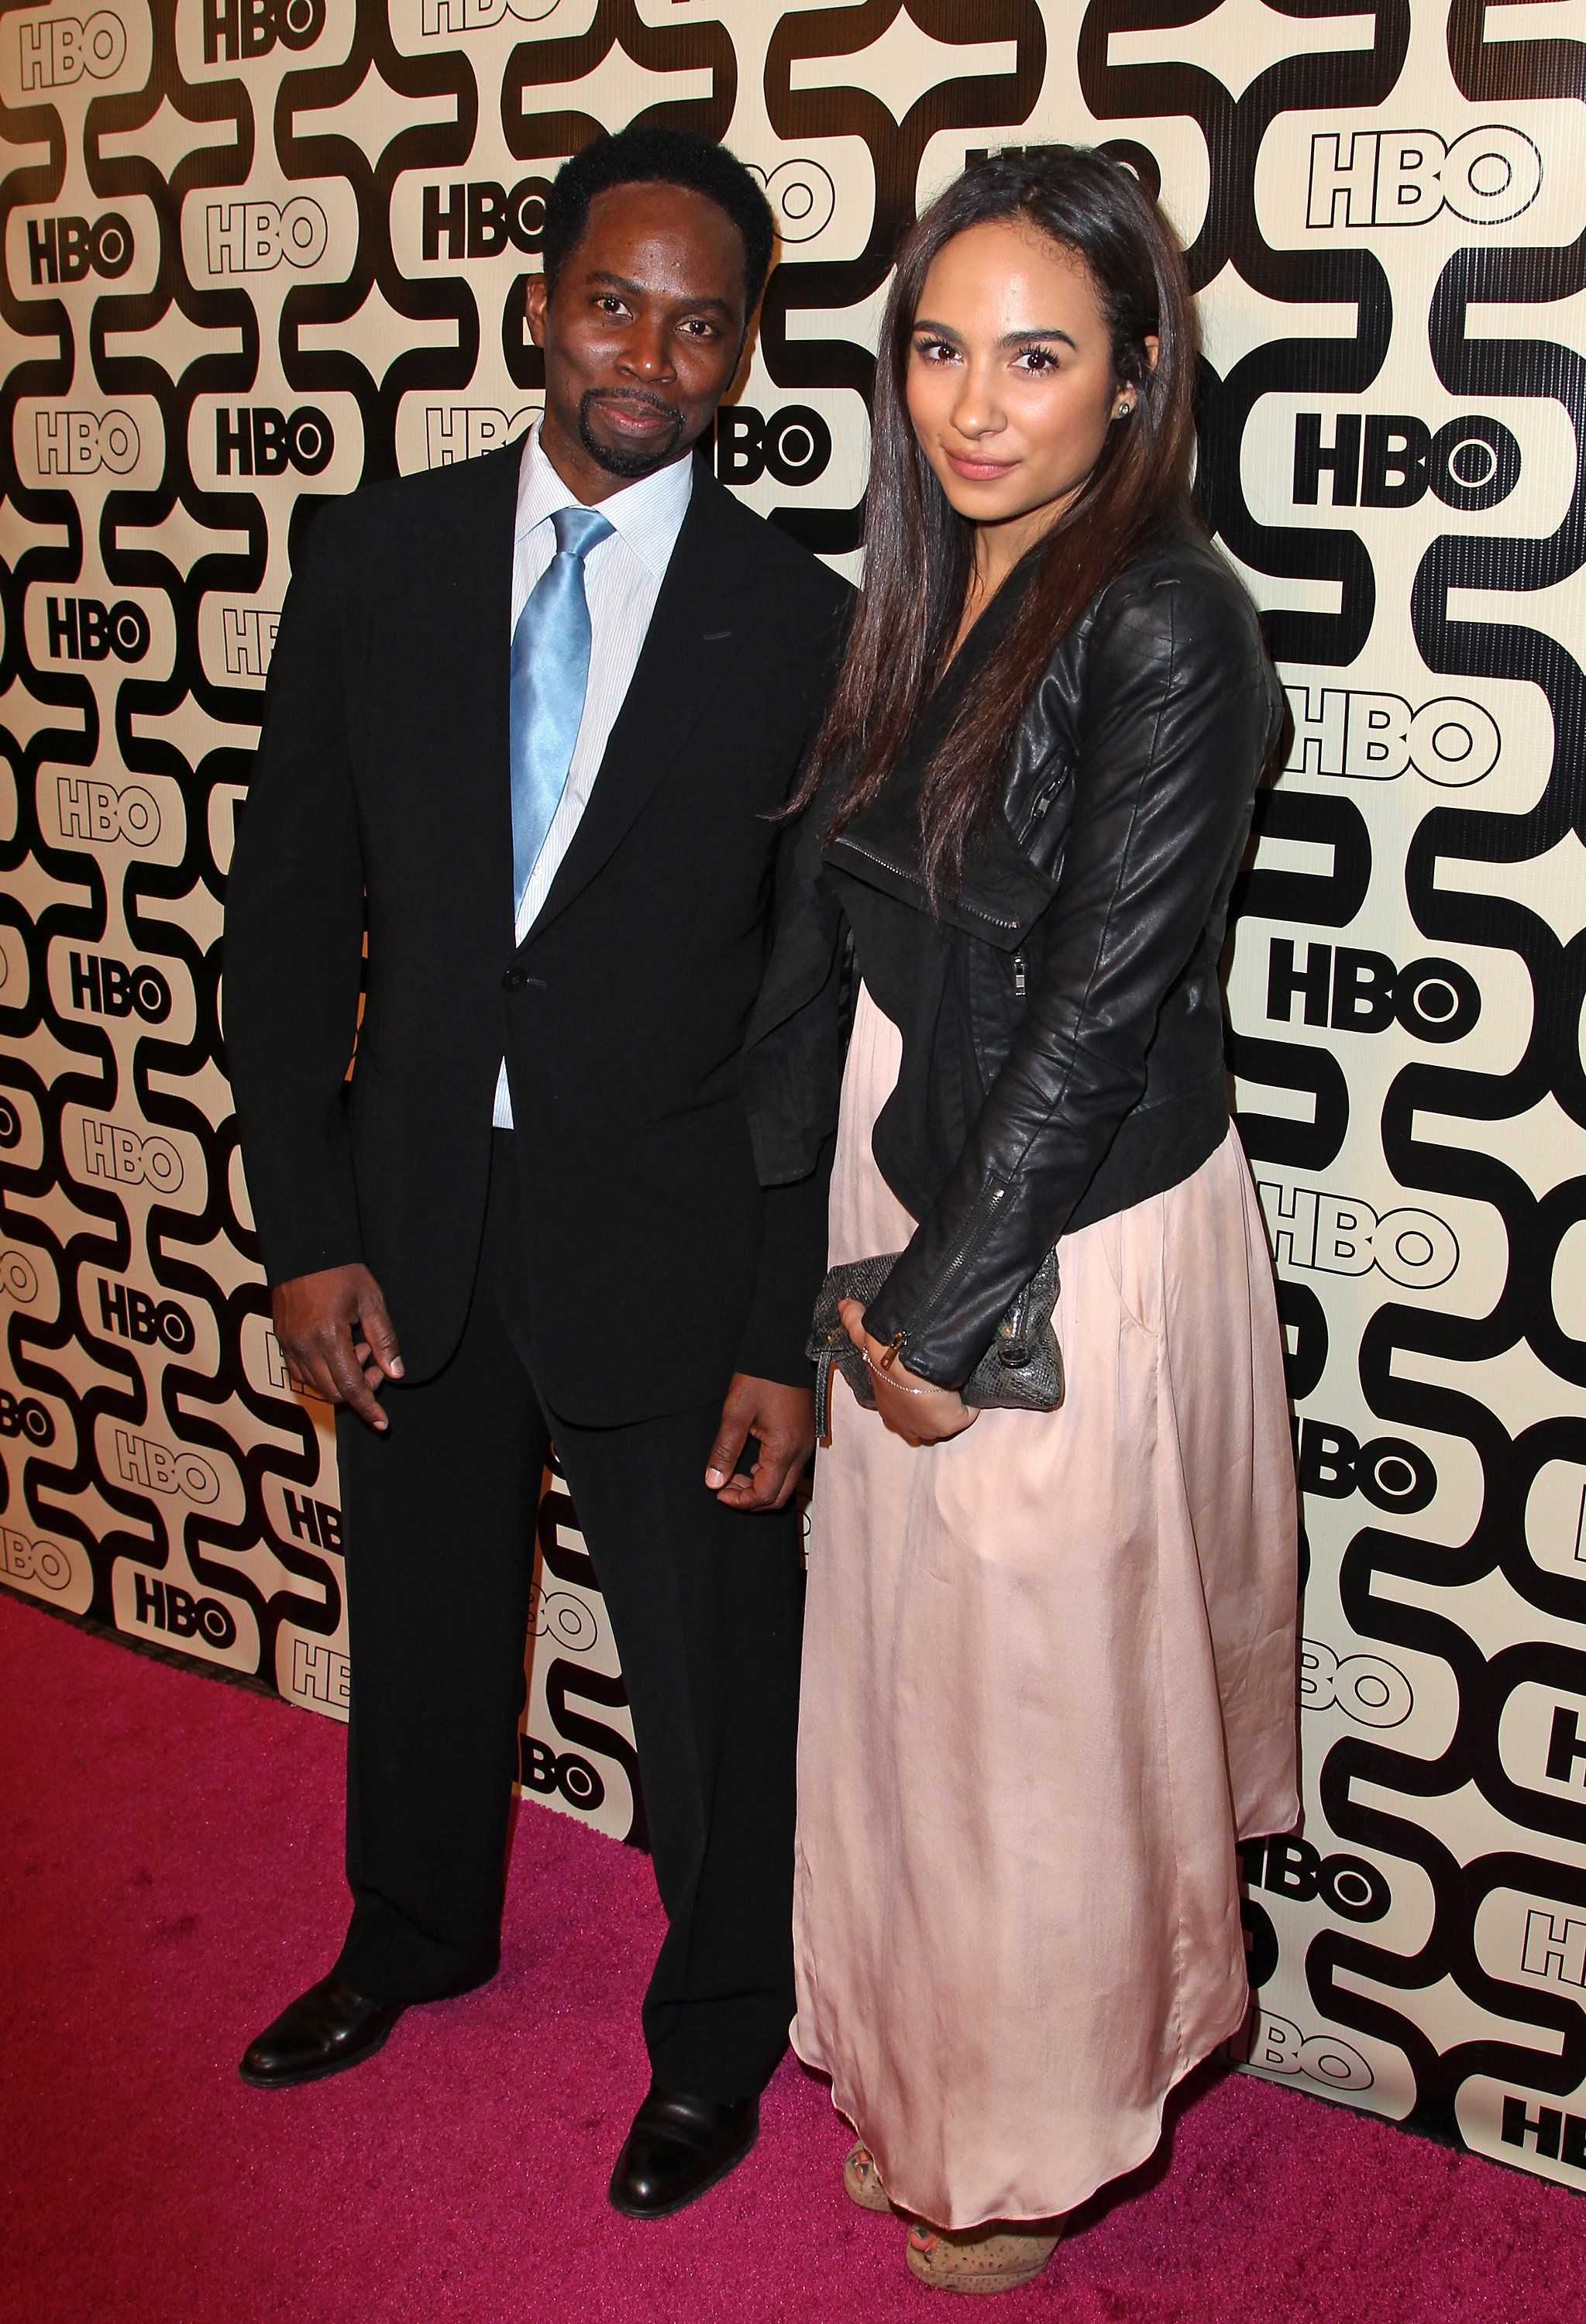 BEVERLY HILLS, CA - JANUARY 13:  Actor Harold Perrineau and daughter Aurora Perrineau attend HBO's Official Golden Globe Awards After Party held at Circa 55 Restaurant at The Beverly Hilton Hotel on January 13, 2013 in Beverly Hills, California.  (Photo by FilmMagic/FilmMagic)